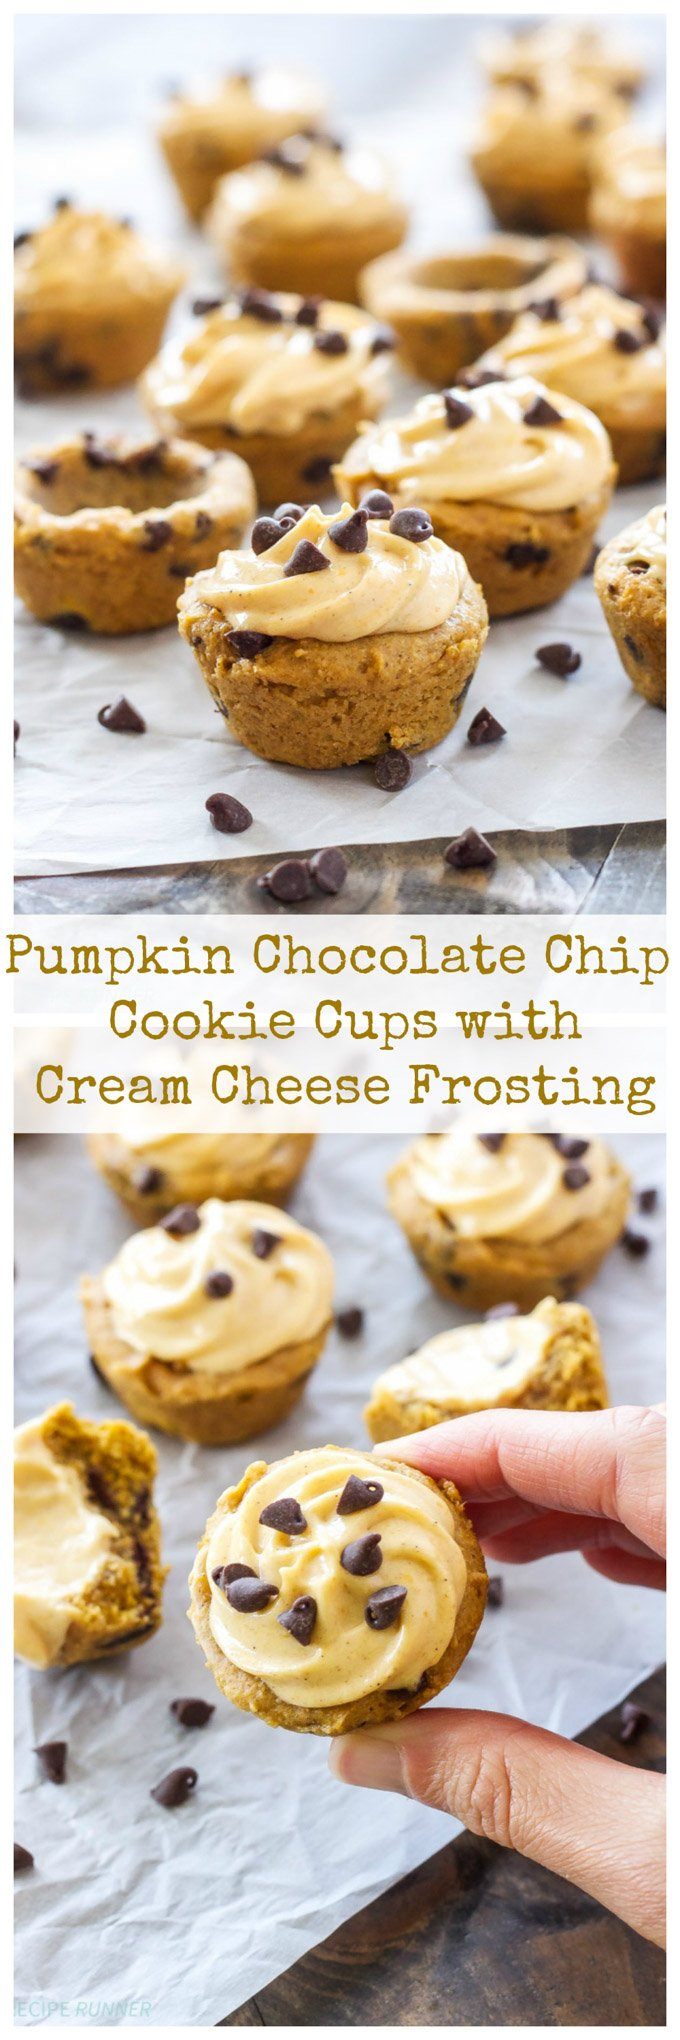 Pumpkin Chocolate Chip Cookie Cups withPumpkin Cream Cheese Frosting | Pumpkin lovers will go crazy for these frosted mini cookie cups!